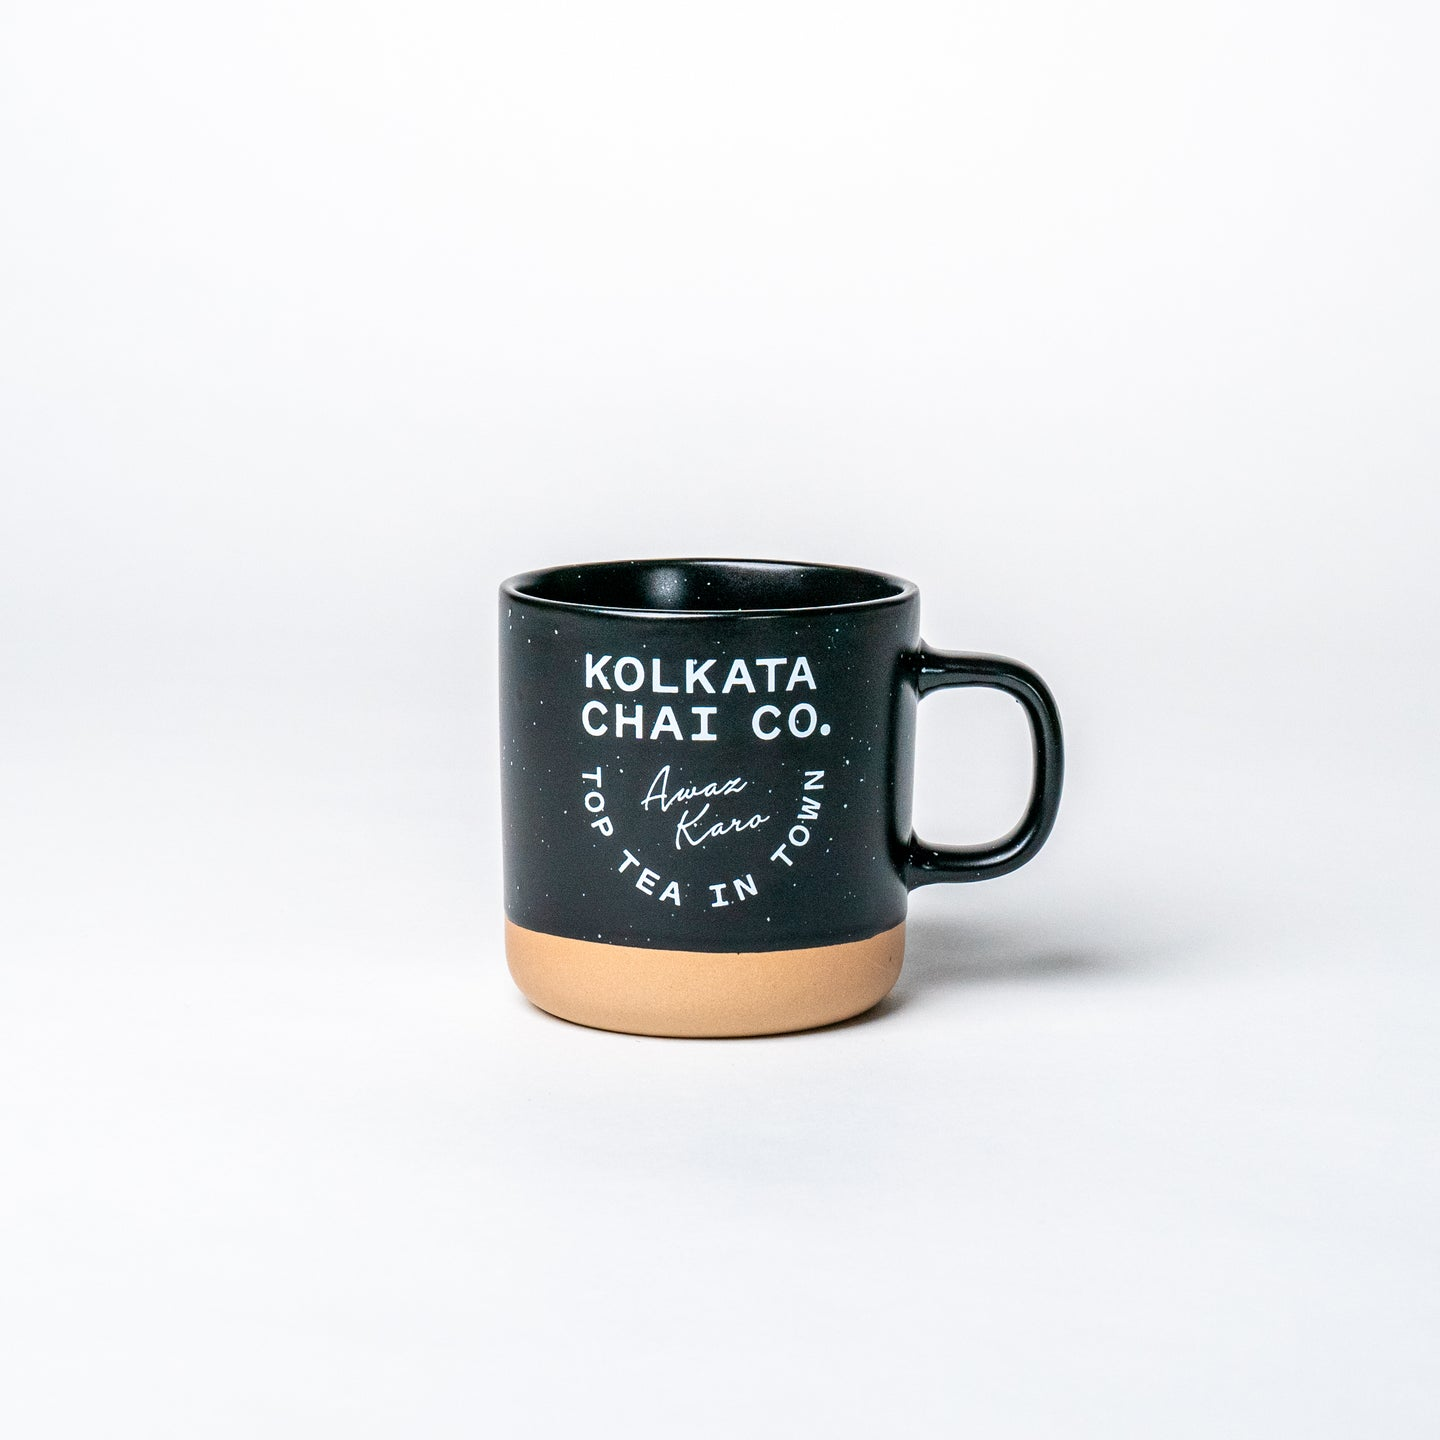 Kolkata Chai Co - Black/Clay Mug